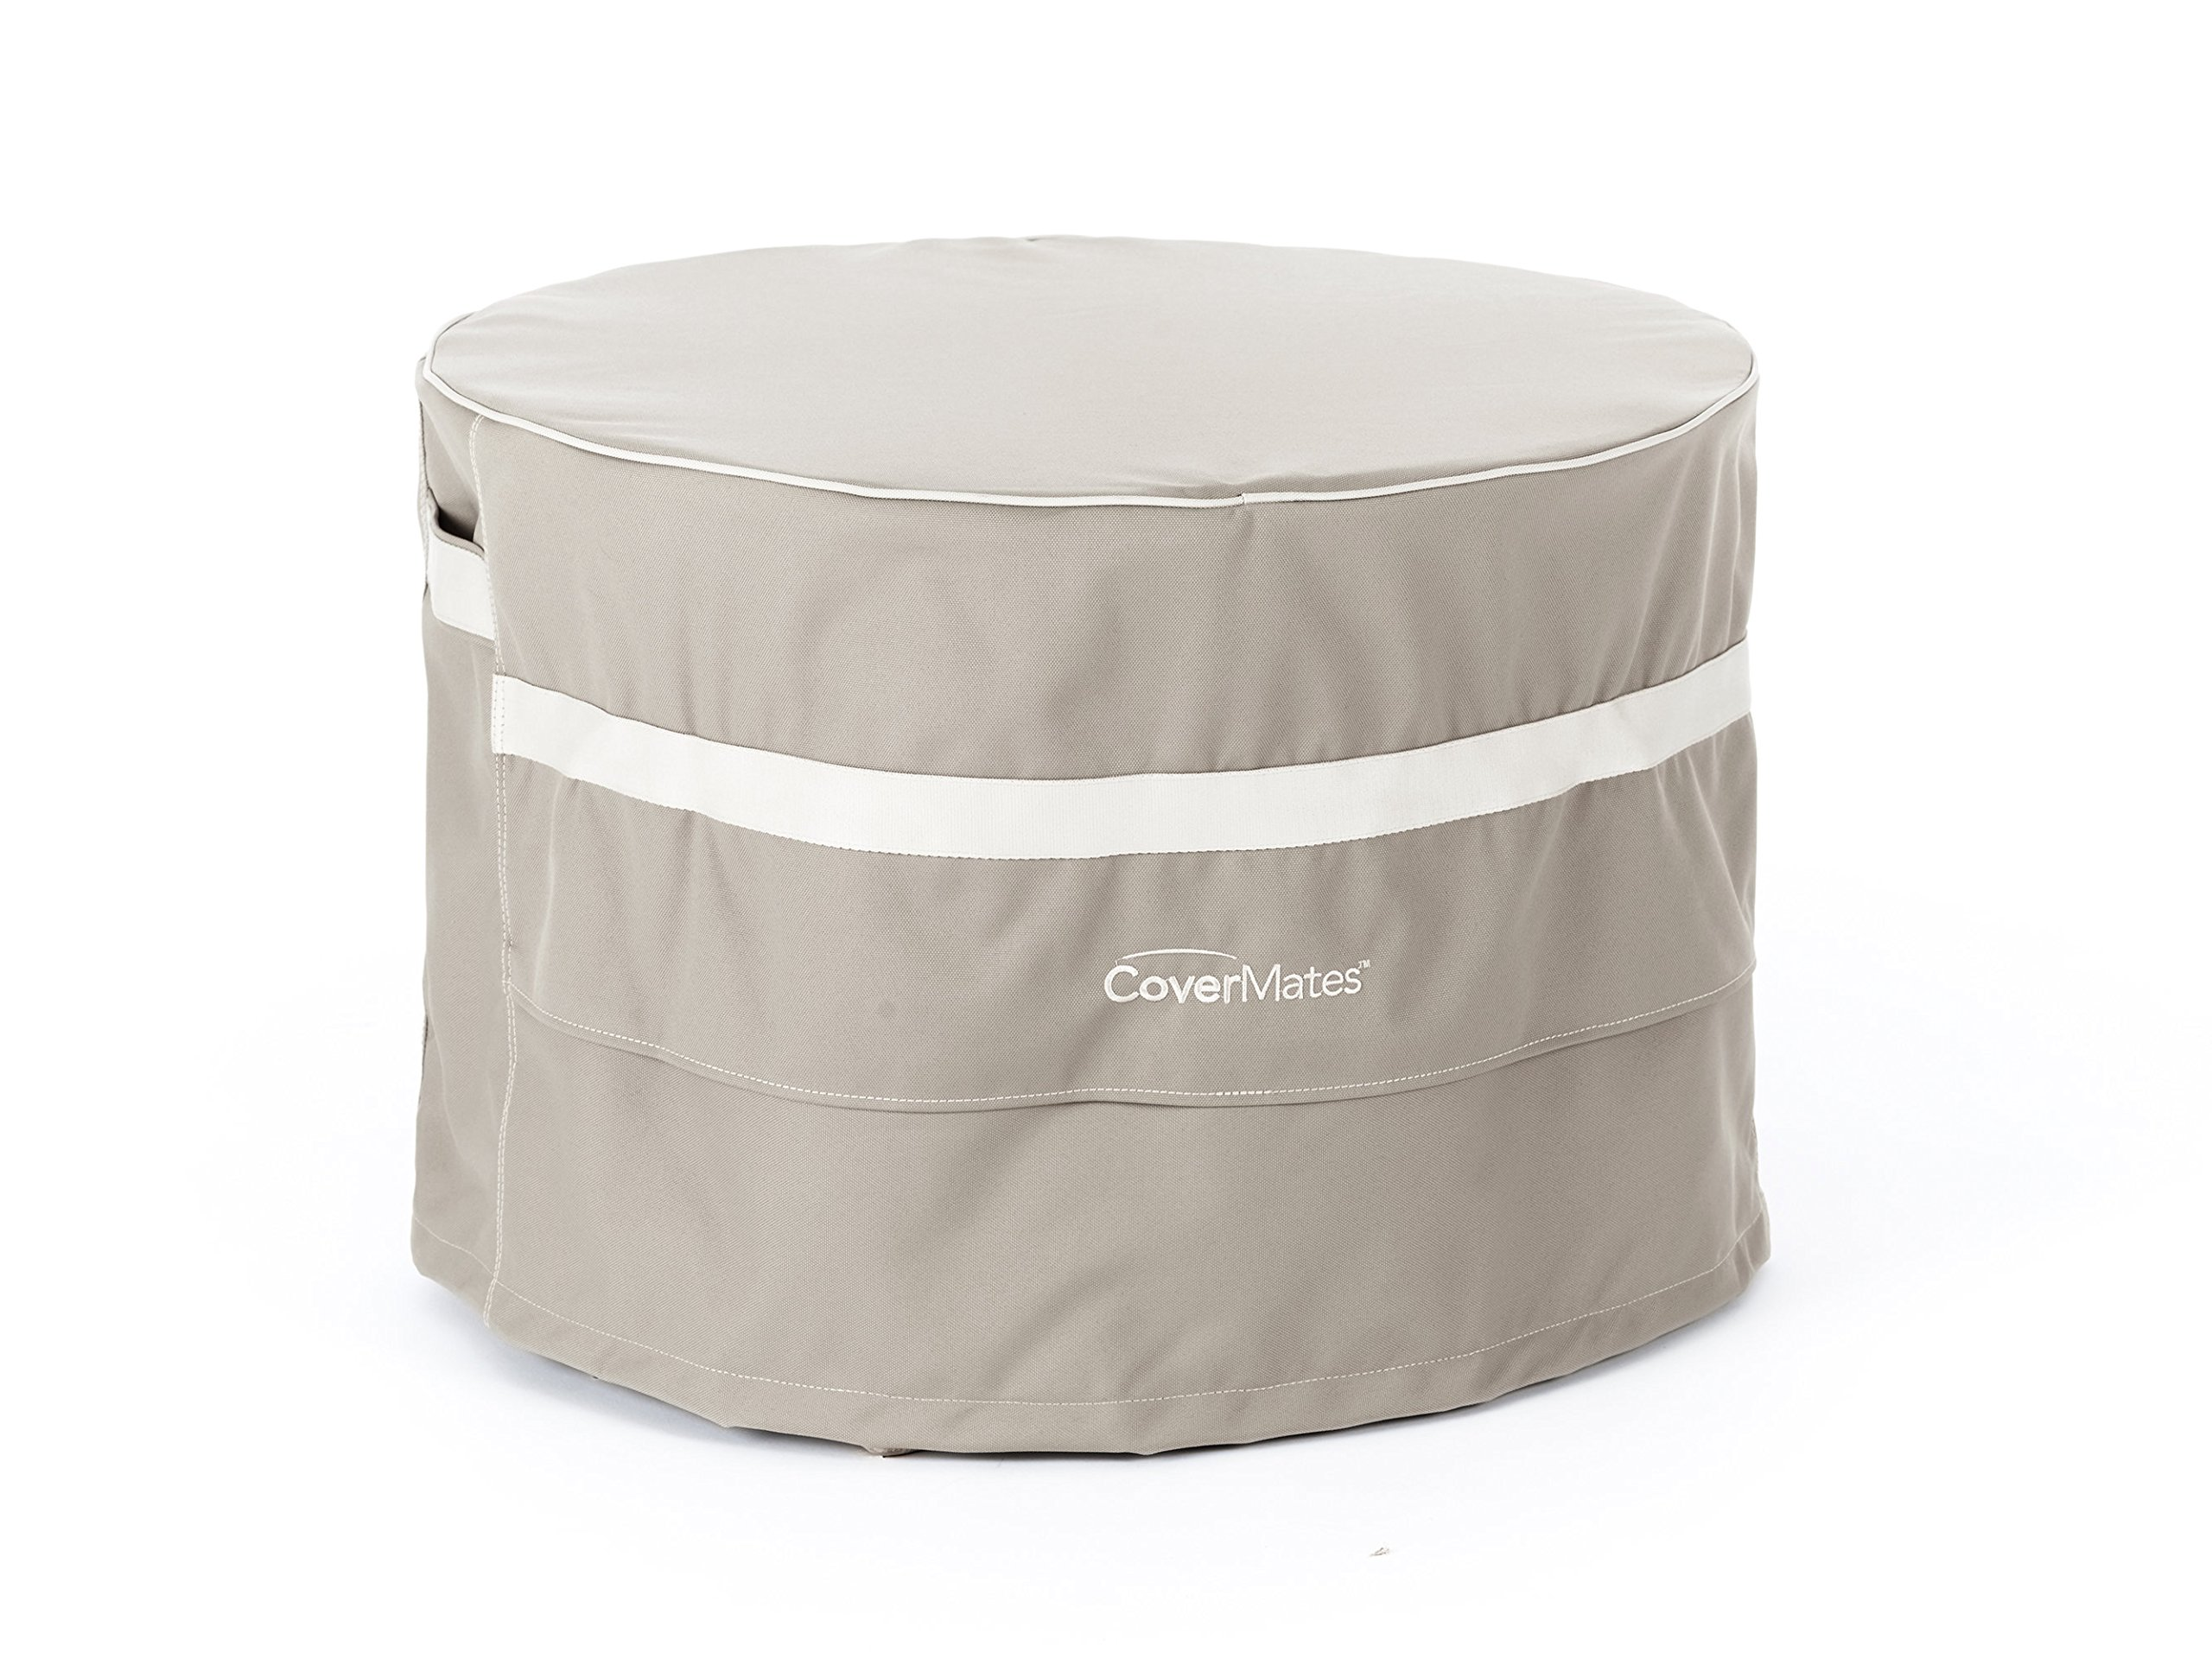 CoverMates – Round Ottoman Cover – 36DIAMETER x 25H – Prestige Collection – 7 YR Warranty – Year Around Protection - Clay